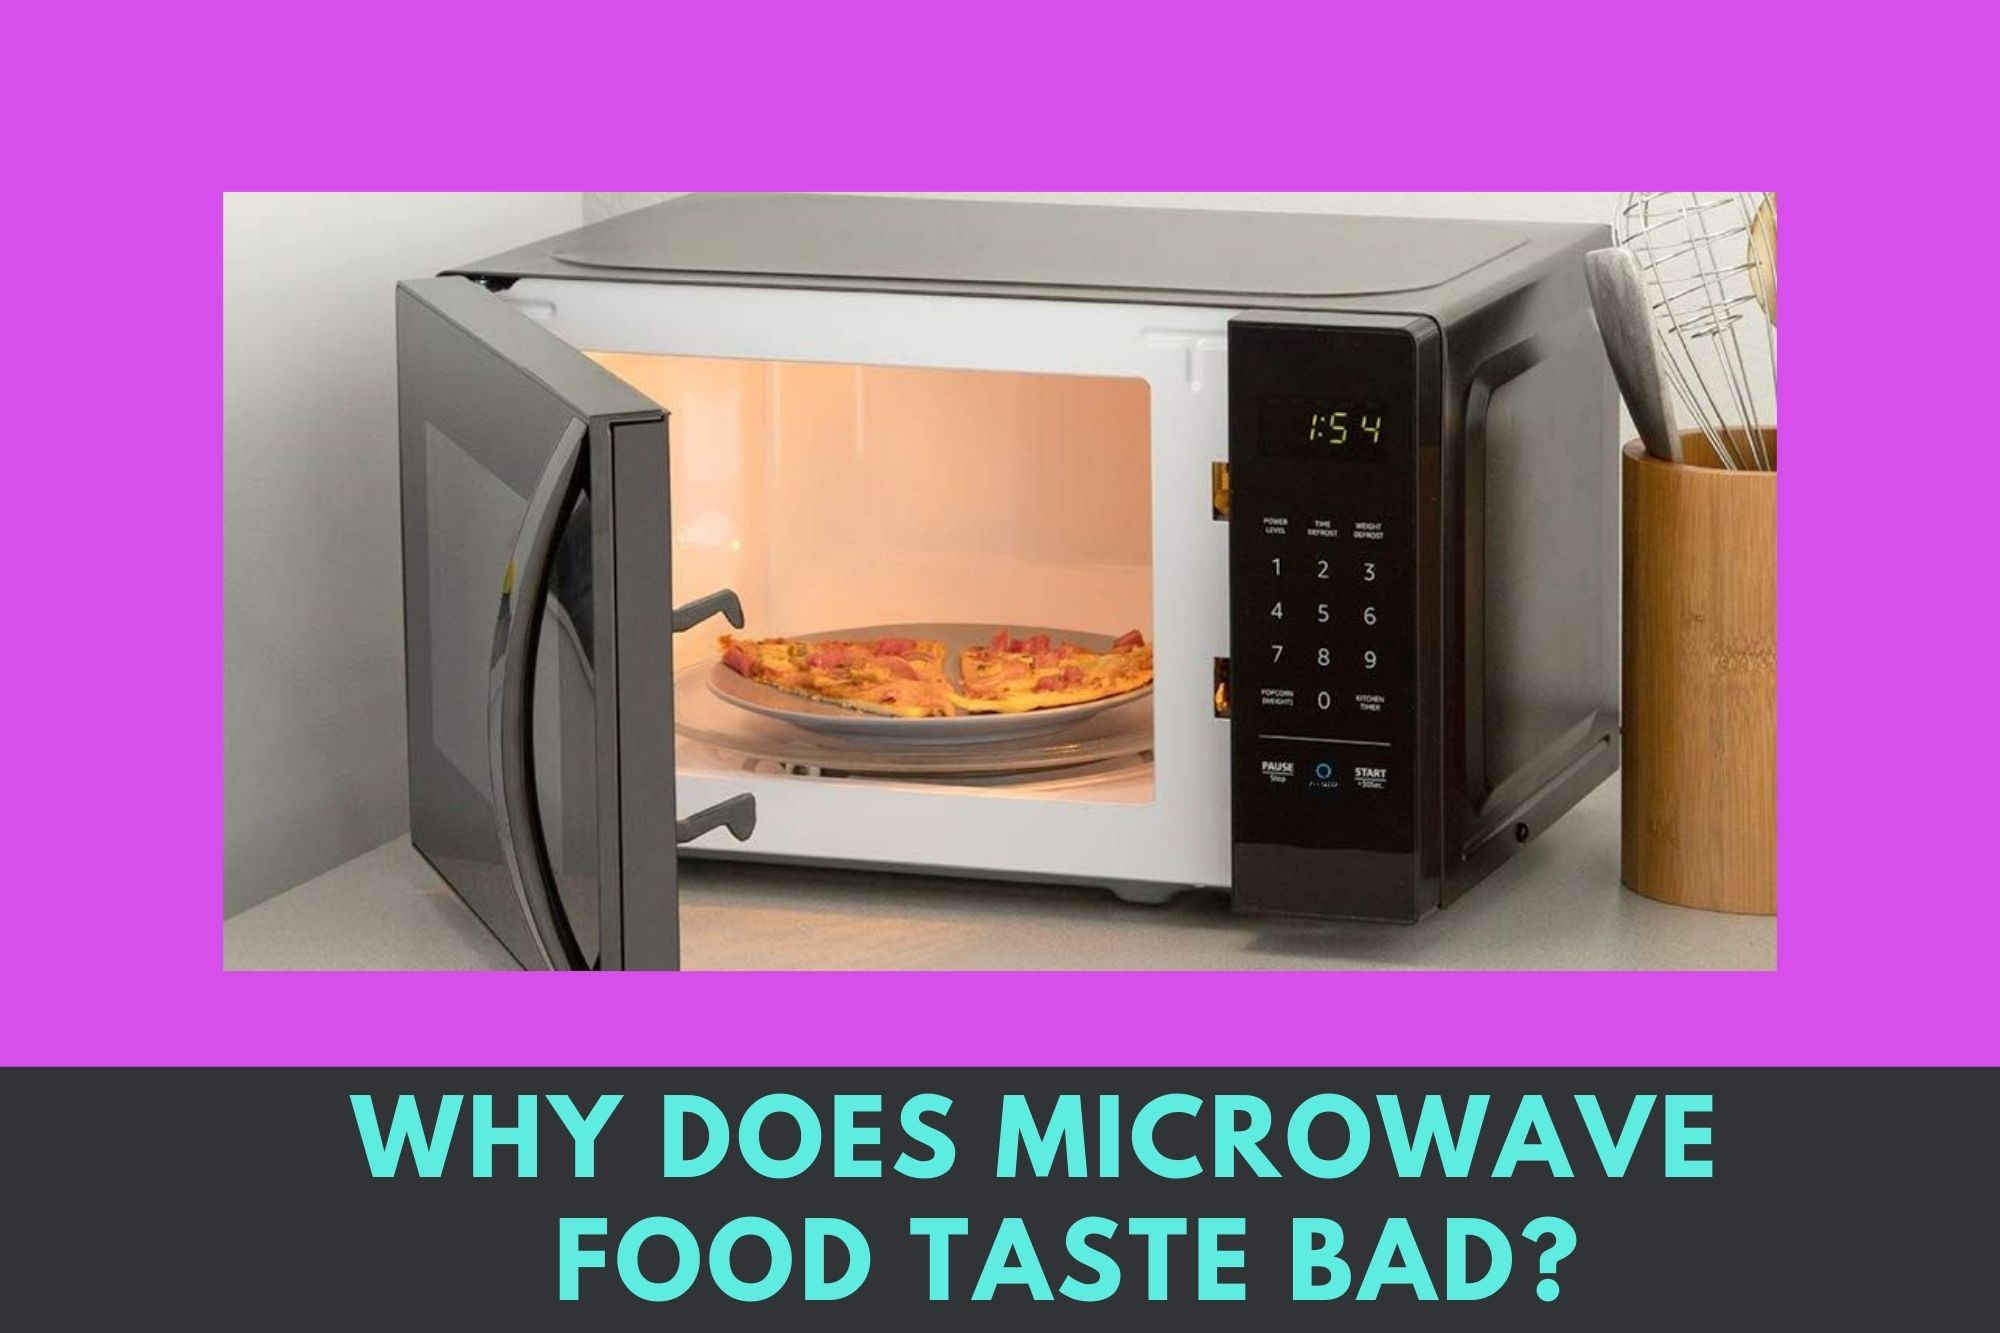 Why Does Microwave Food Taste Bad? What Components Change Your Food's Flavor Totally? What Meals After Reheating Taste Bitter? Why Does Food Tastes Bitter After Reheating? What Kind Of Meals Taste Better Even After Reheating In The Microwave?